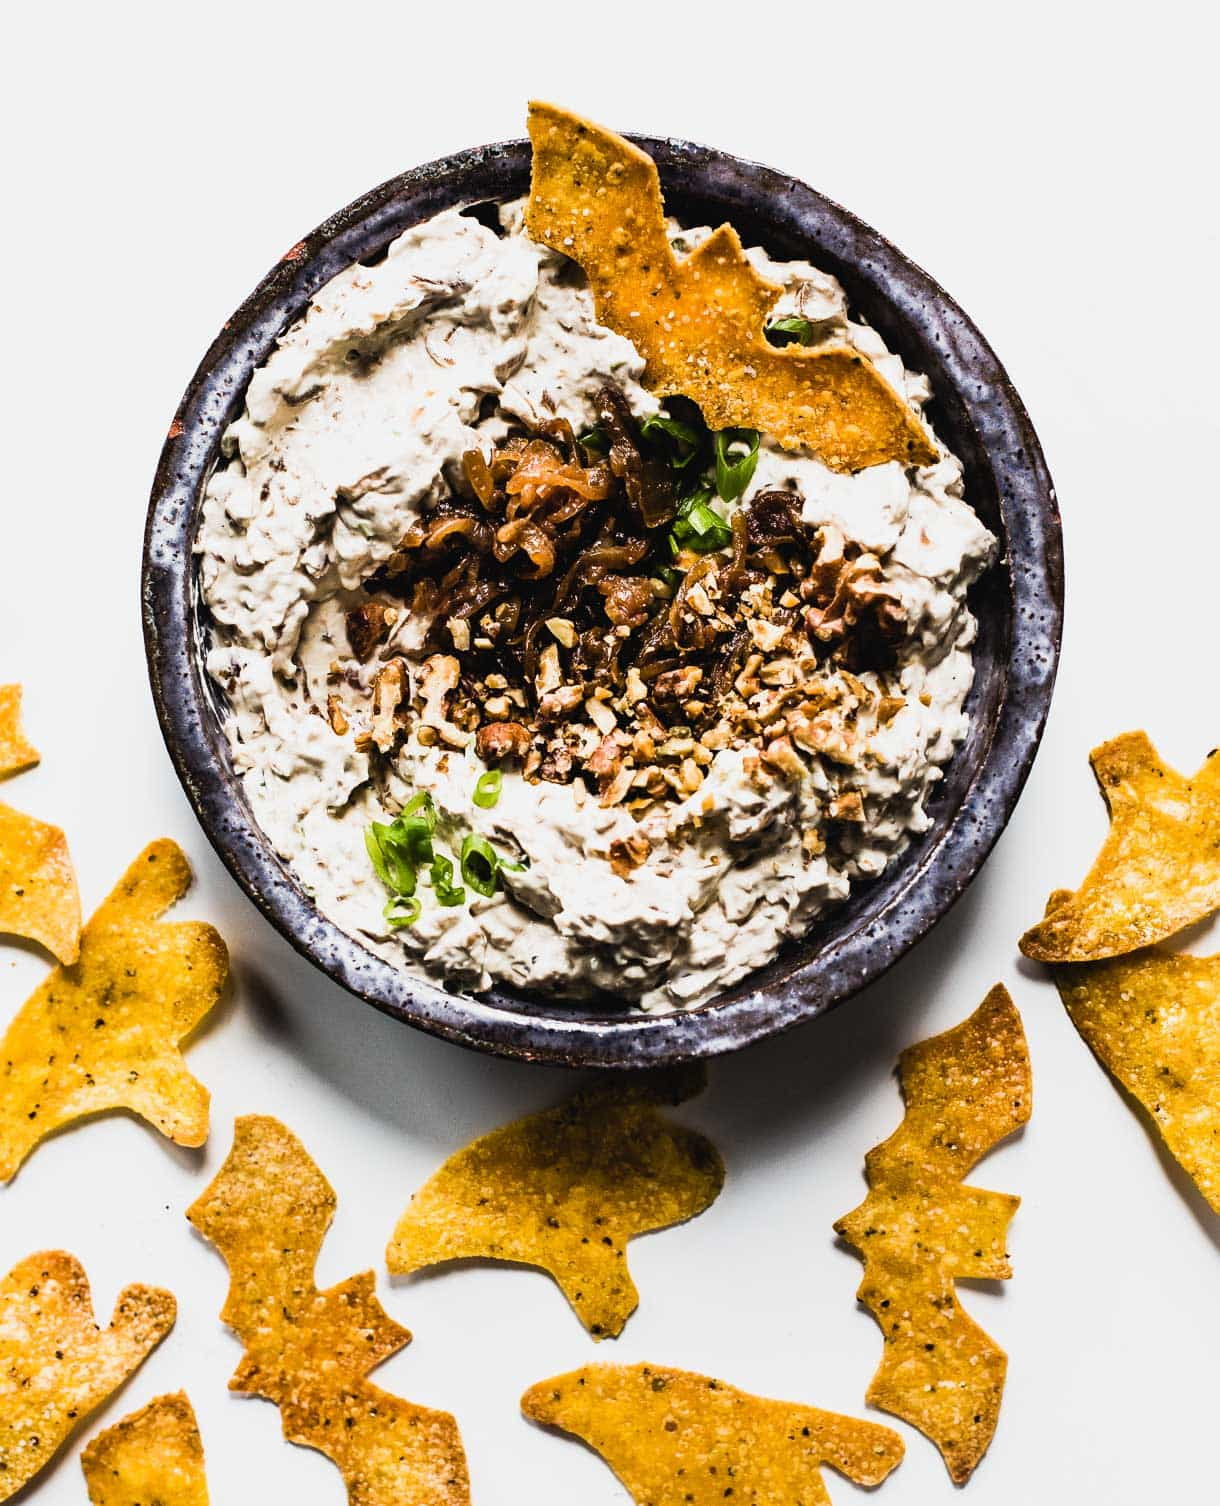 Cream Cheese Onion Dip with DIY Halloween Tortilla Chips